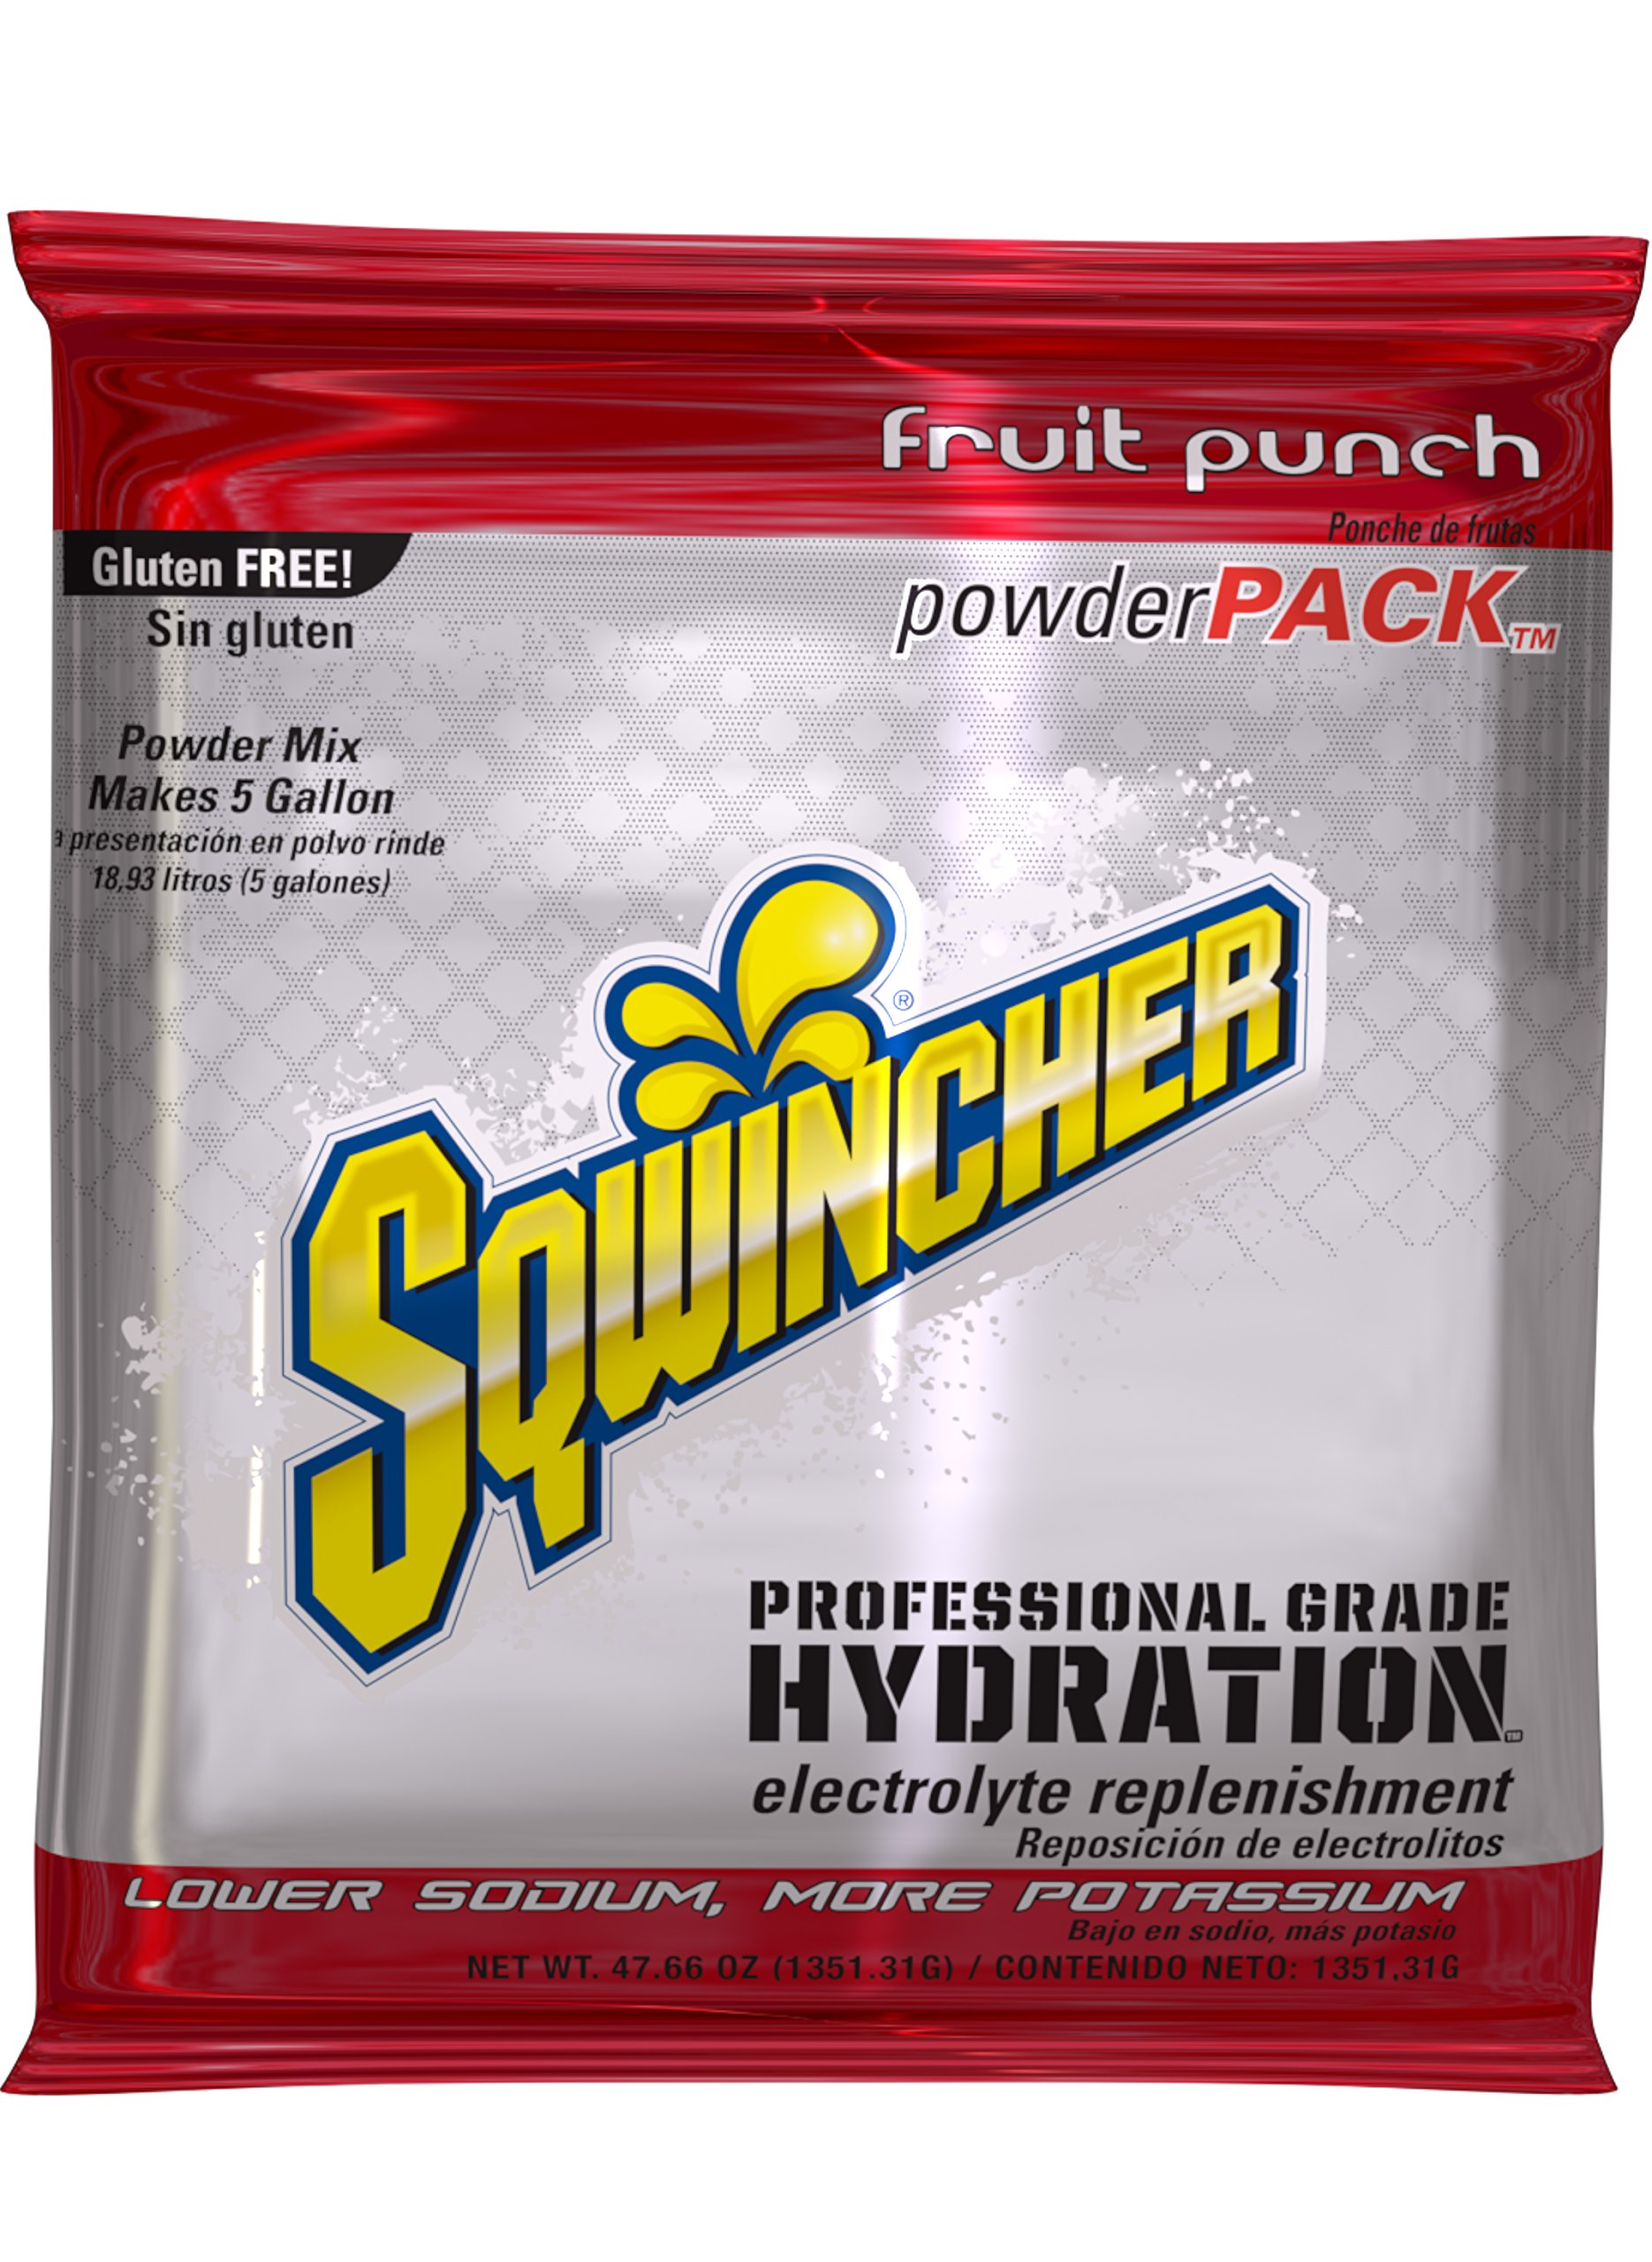 Sqwincher Powder Concentrate Electrolyte Replacement Beverage Mix, Fruit Punch 016405-FP (Case of 16), 47.66 Oz each (5 gal when water mixed)